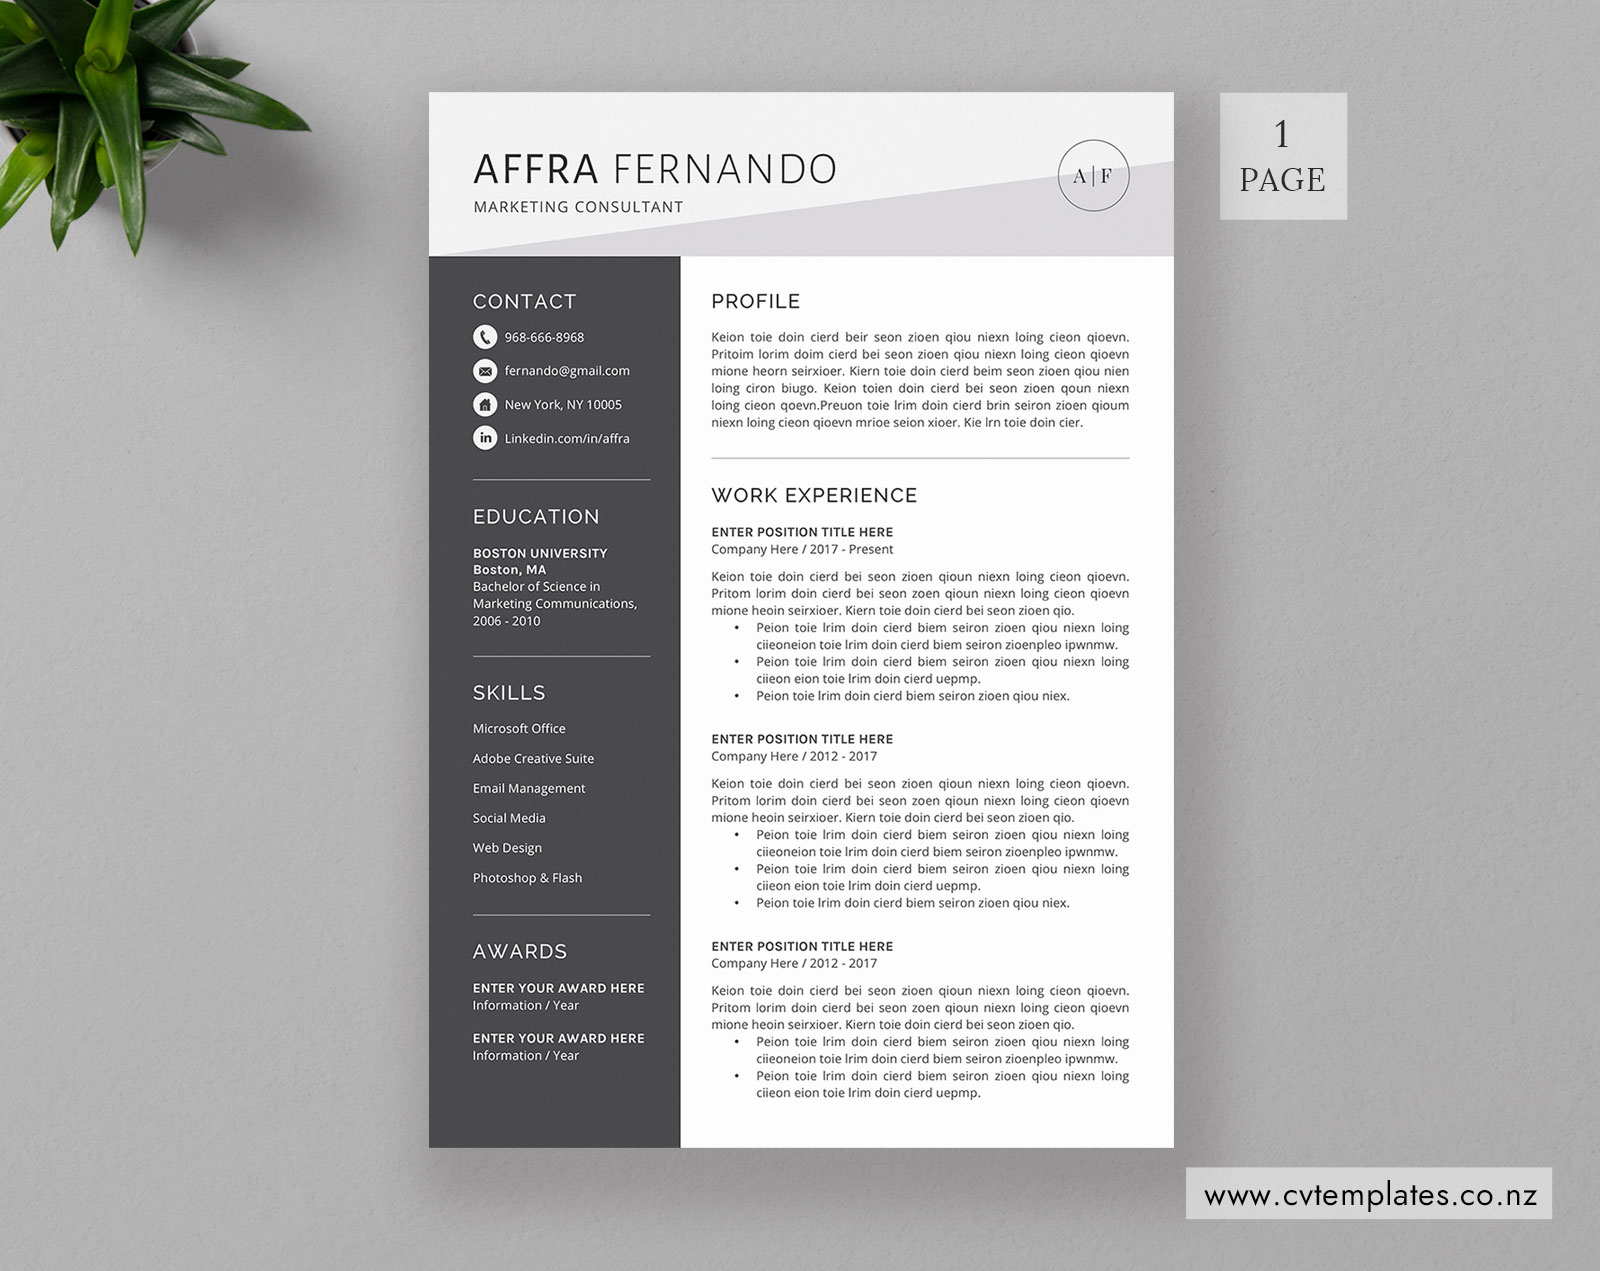 Cv Template For Ms Word Professional Curriculum Vitae Cv Template Design Cover Letter 1 2 And 3 Page Modern Creative Resume Template Instant